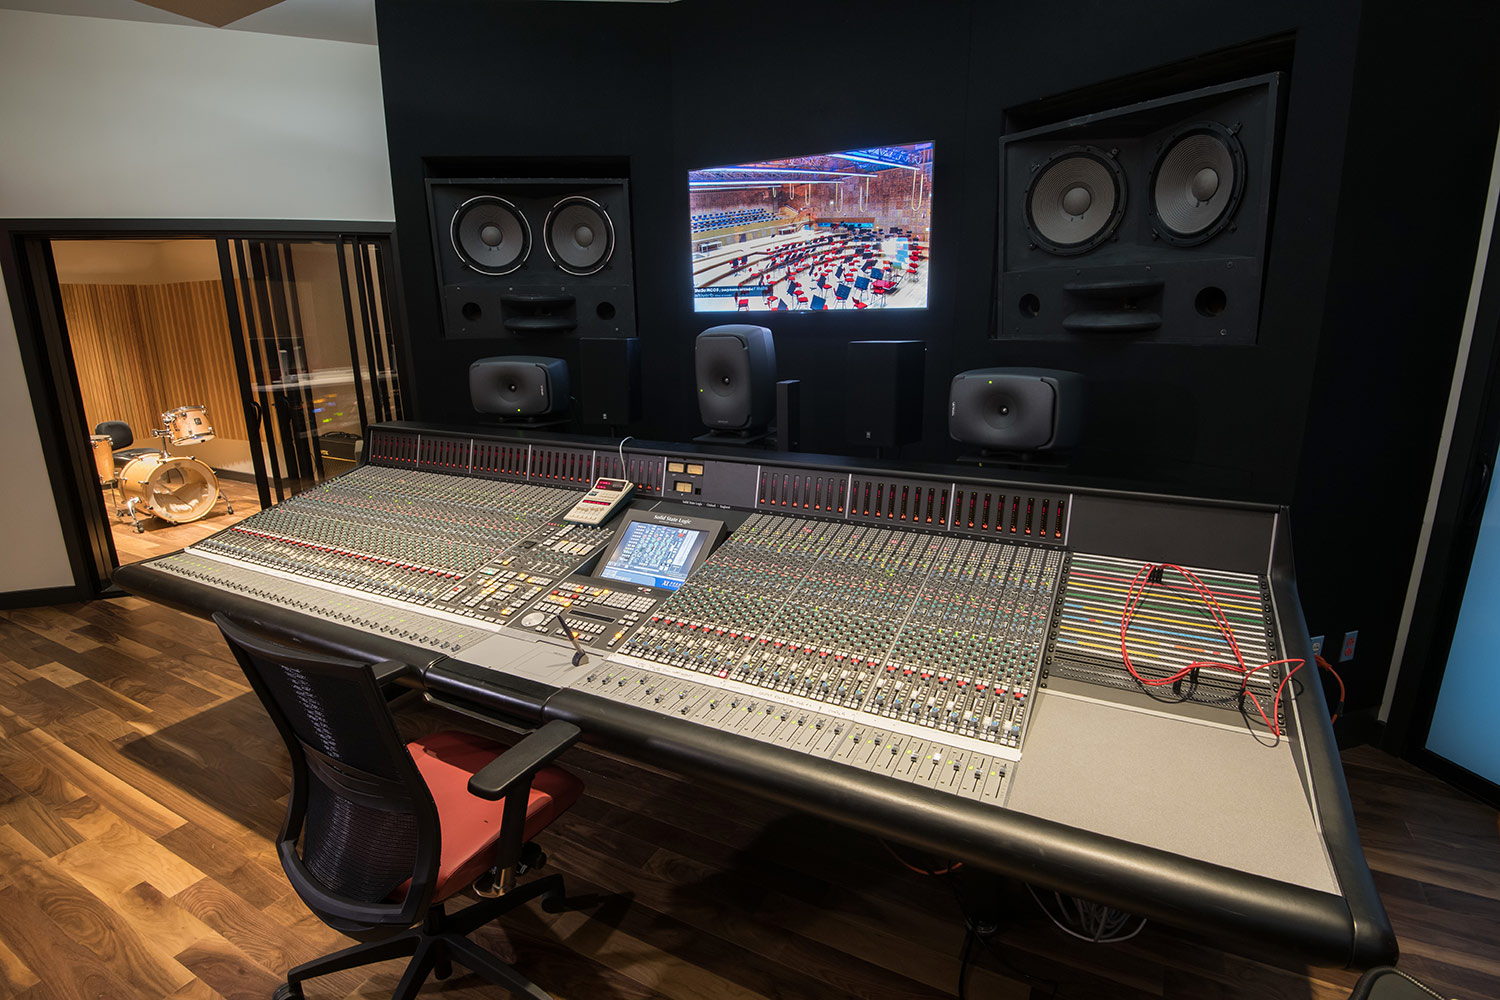 Montgomery County Community College in Blue Bell, PA brand-new Recording Studio for their Digital Music Technology course. Designed by WSDG. Architectural acoustics and media systems engineering. Control Room From View of SSL XL board and Augspurger Speakers.